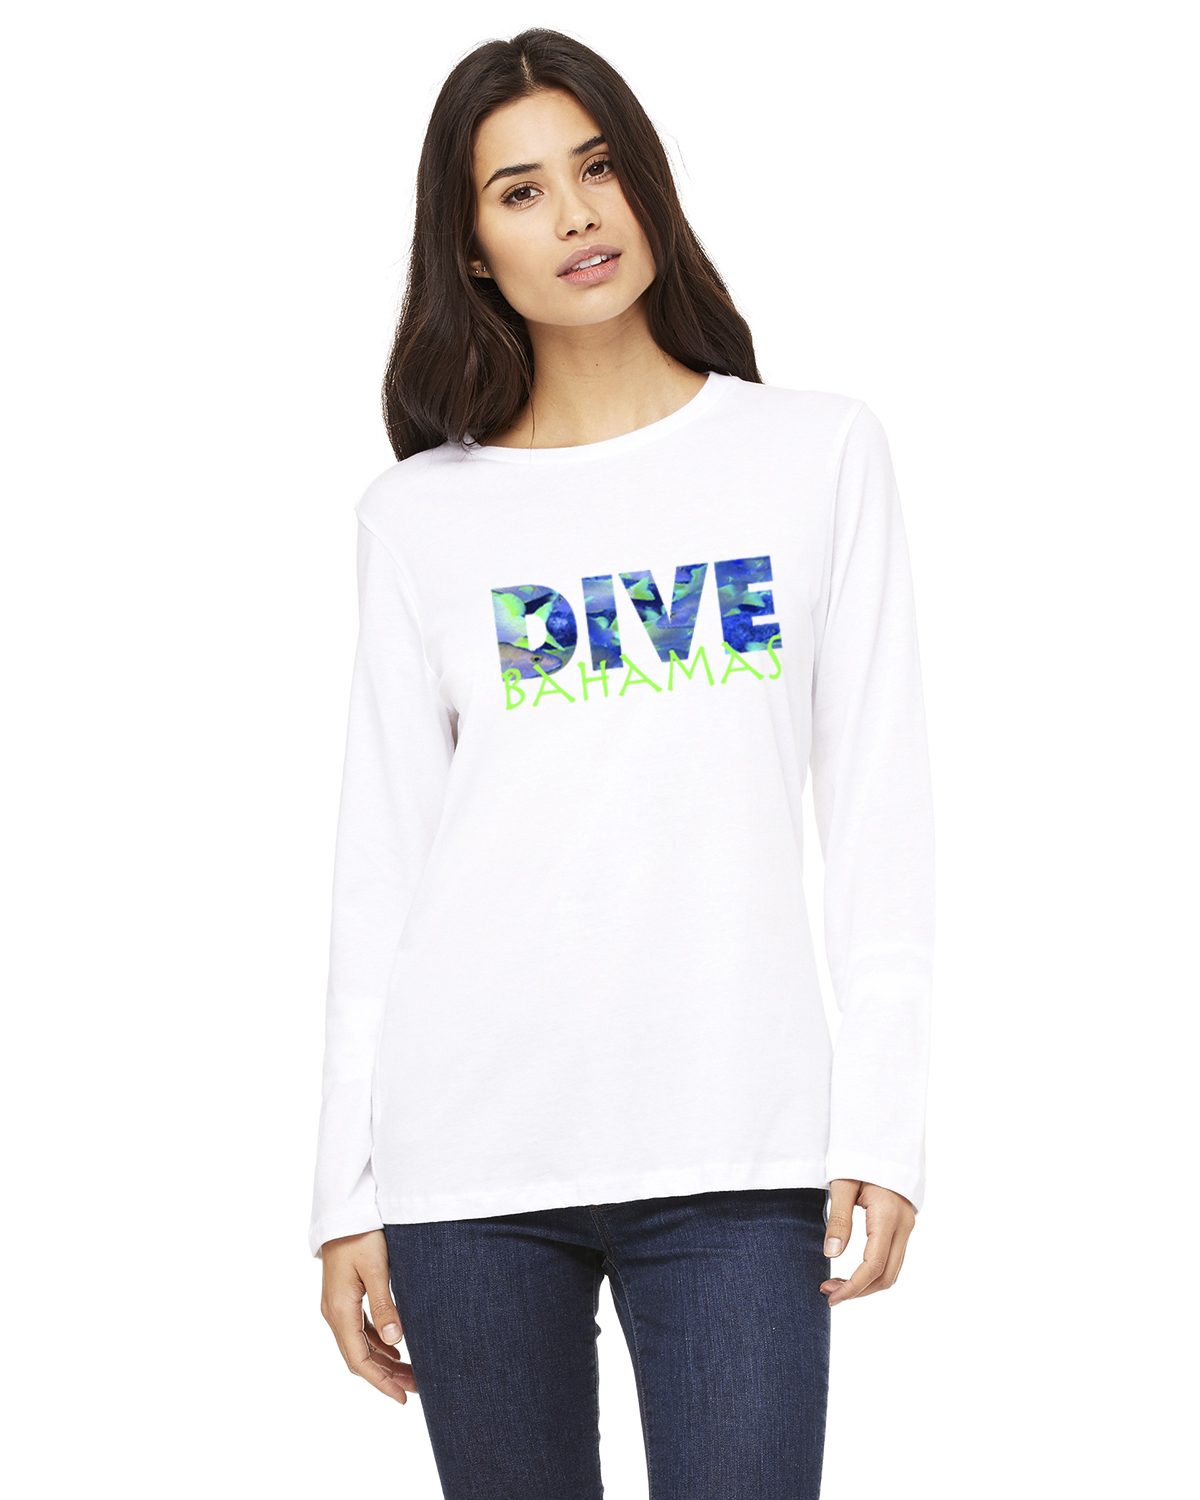 Women's Long Sleeve DIVE Bahamas T-Shirt (White)